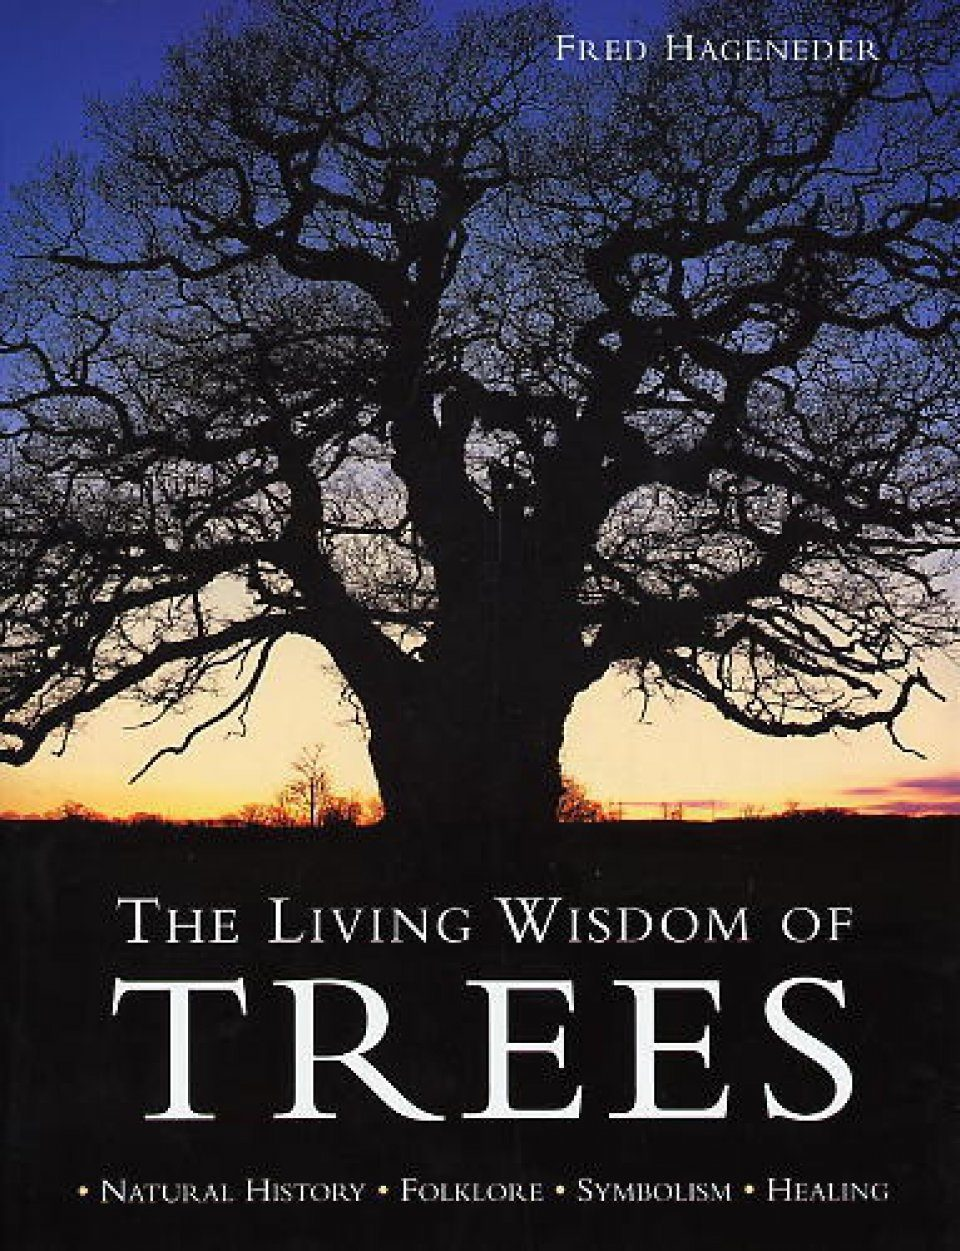 The Living Wisdom of Trees